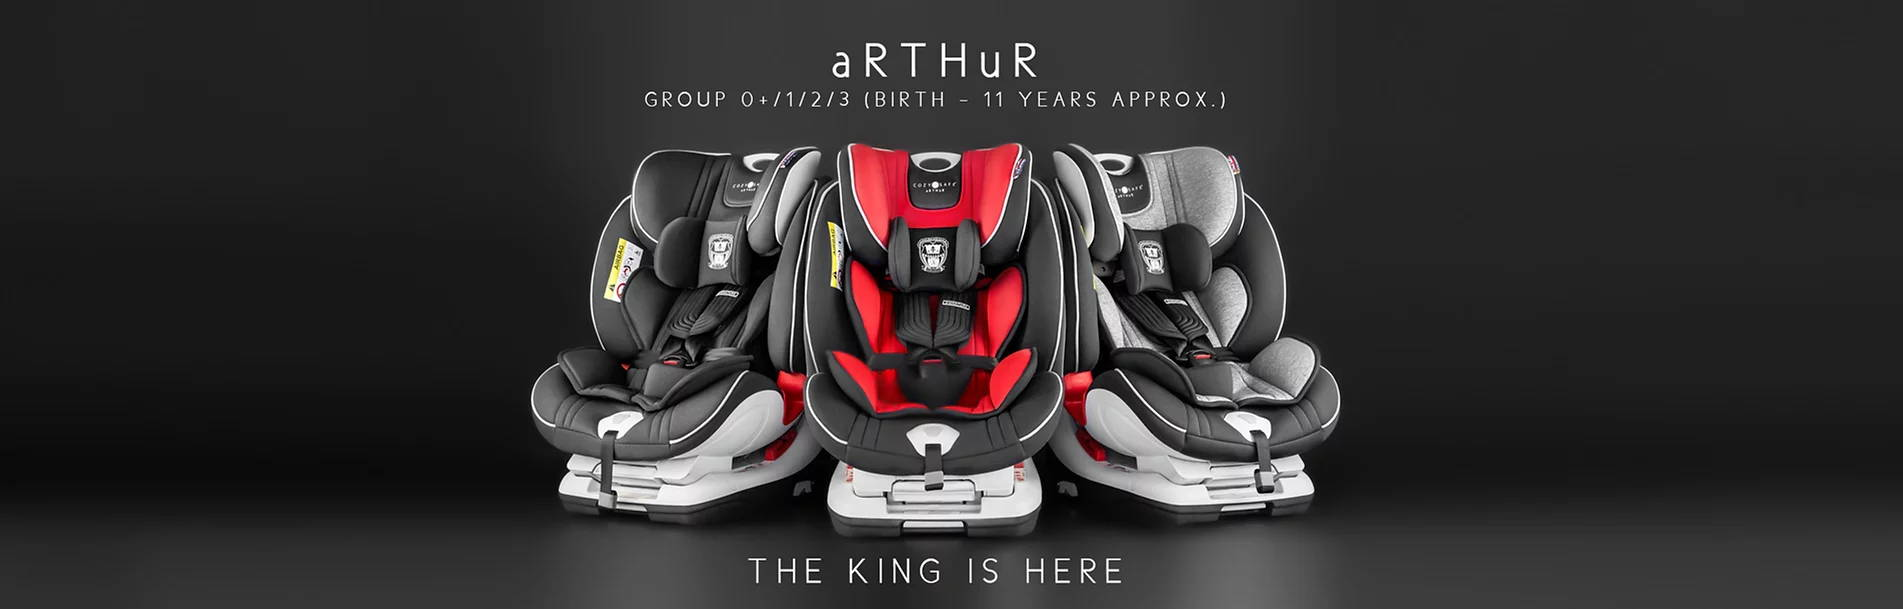 cozynsafe Arthur car seat group 0+ 1 2 3 king